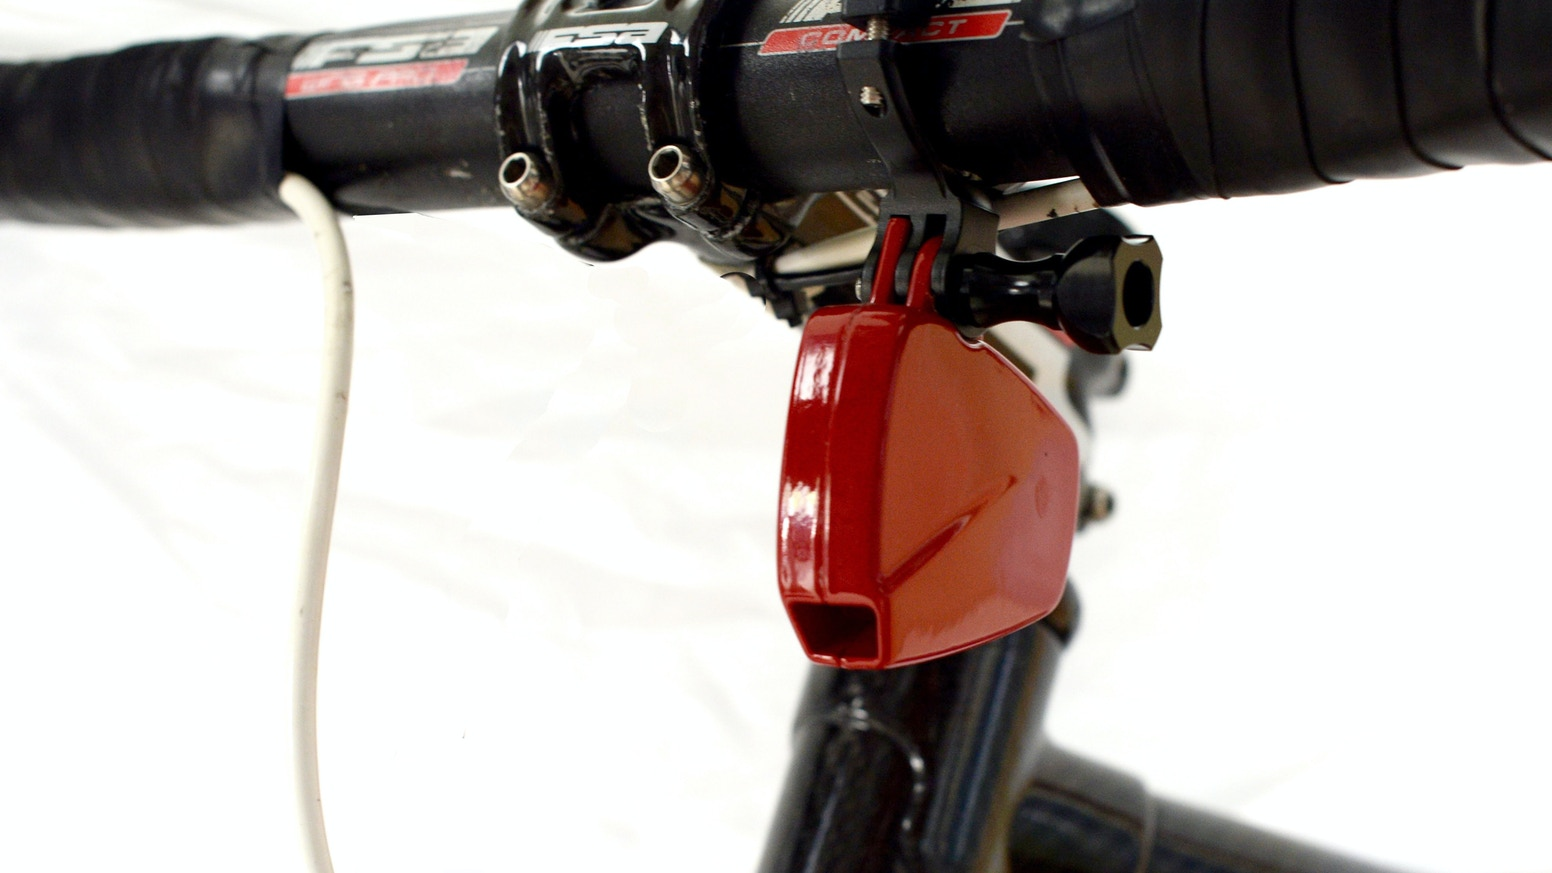 PowerPod is a revolutionary power meter that mounts under the handlebars, providing superior accuracy, portability, and affordability. Now available at powerpodsports.com